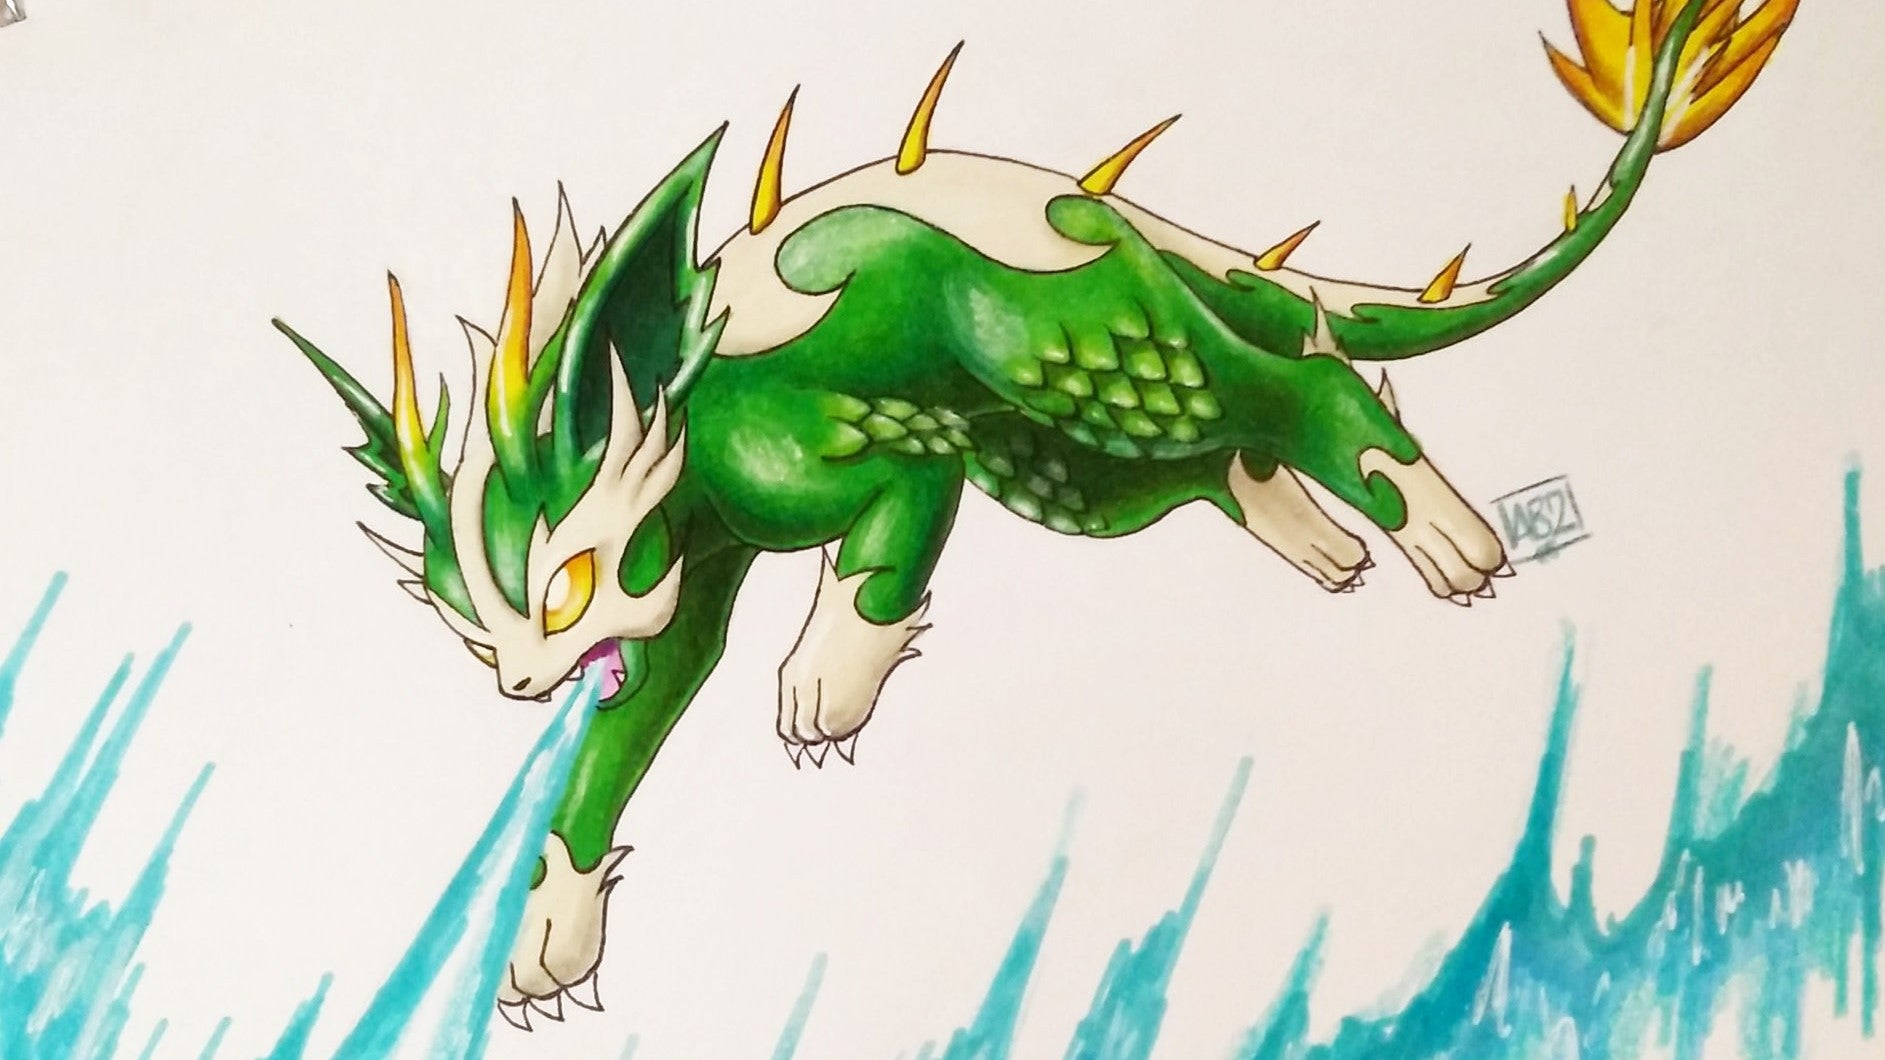 Eevee Is Missing A Few Evolutions, So This Artist Made Them